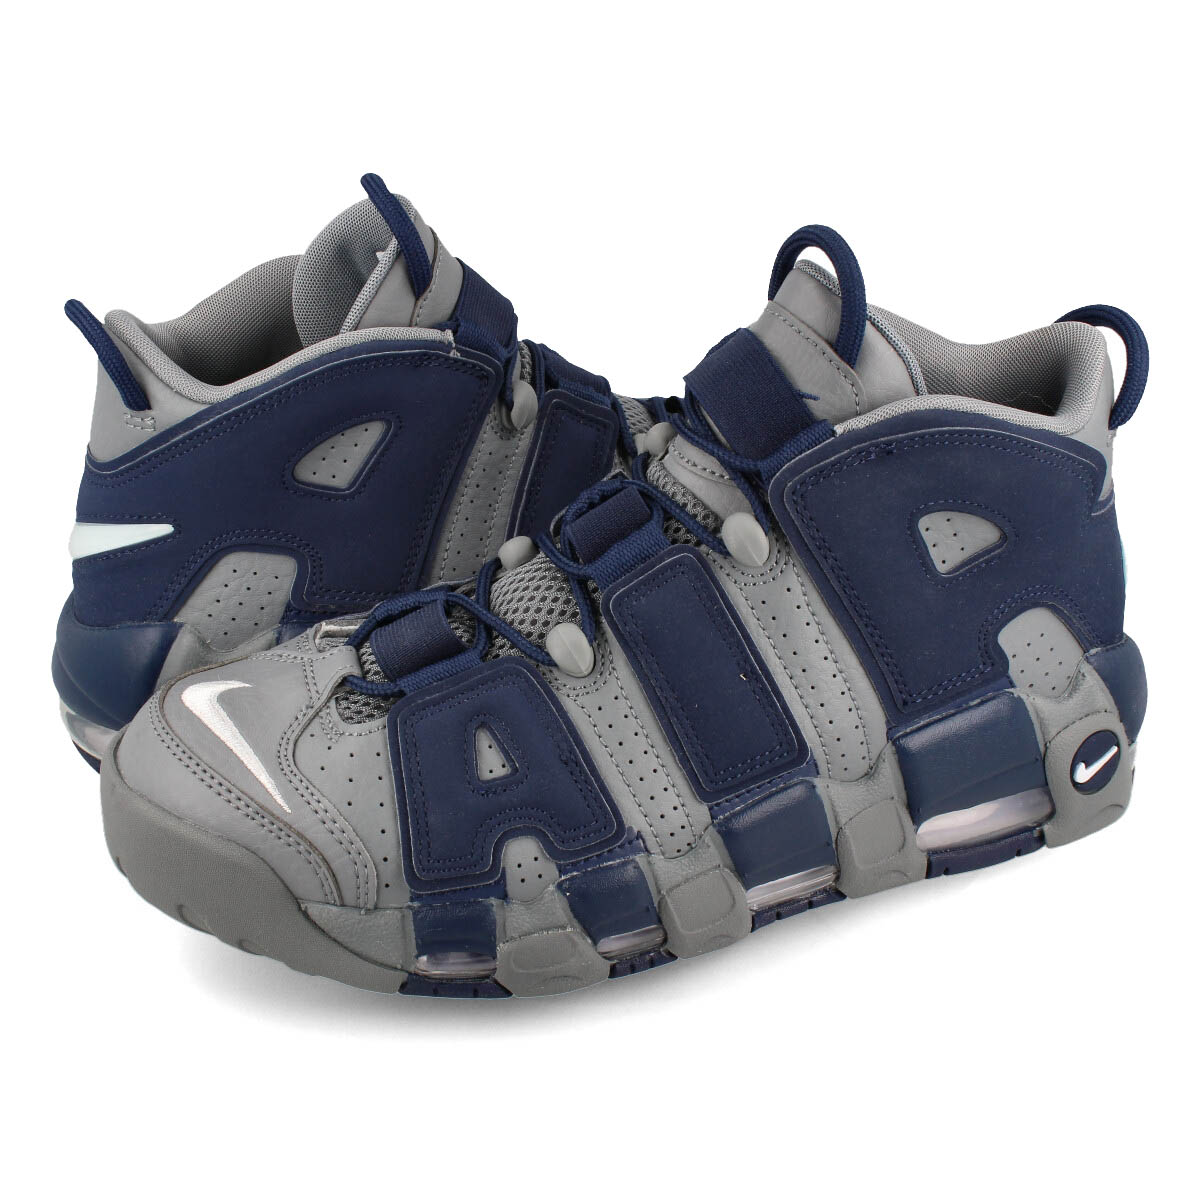 NIKE AIR MORE UPTEMPO 96 【HOYAS】 ナイキ モア アップ テンポ 96 COOL GREY/WHITE/MIDNIGHT NAVY 921948-003